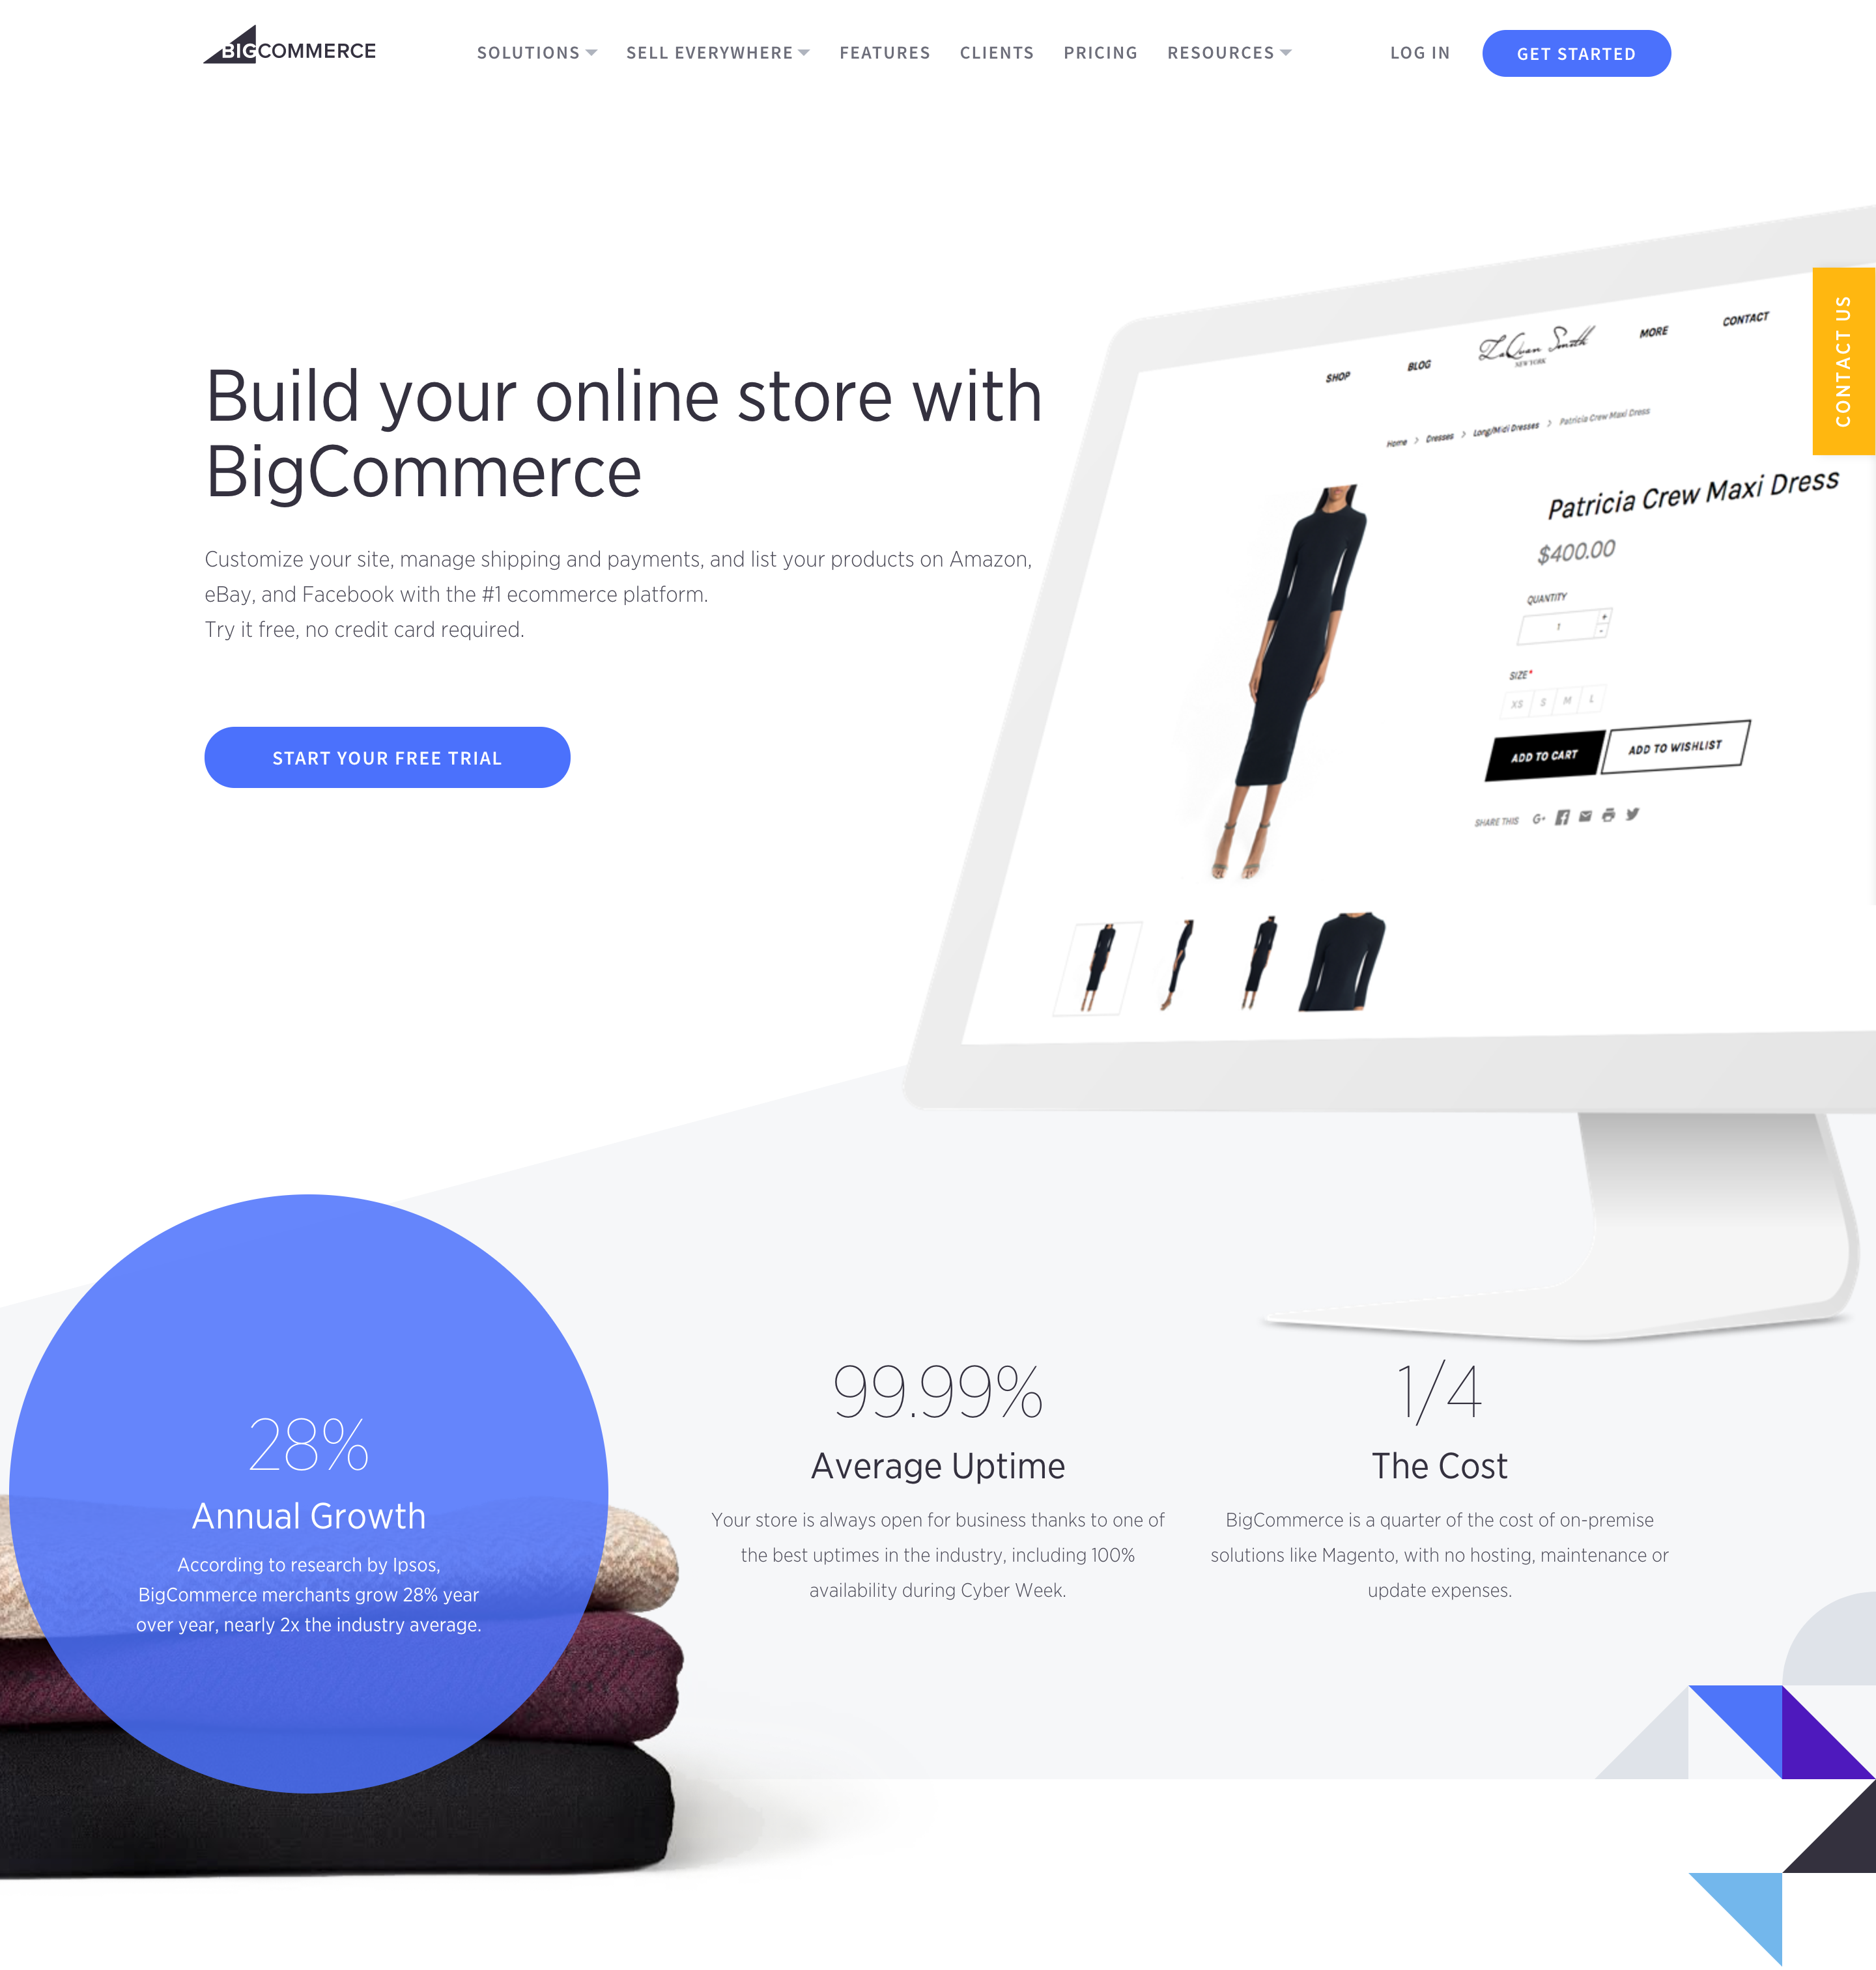 BigCommerce home page. How to choose an ecommerce platform for your business.